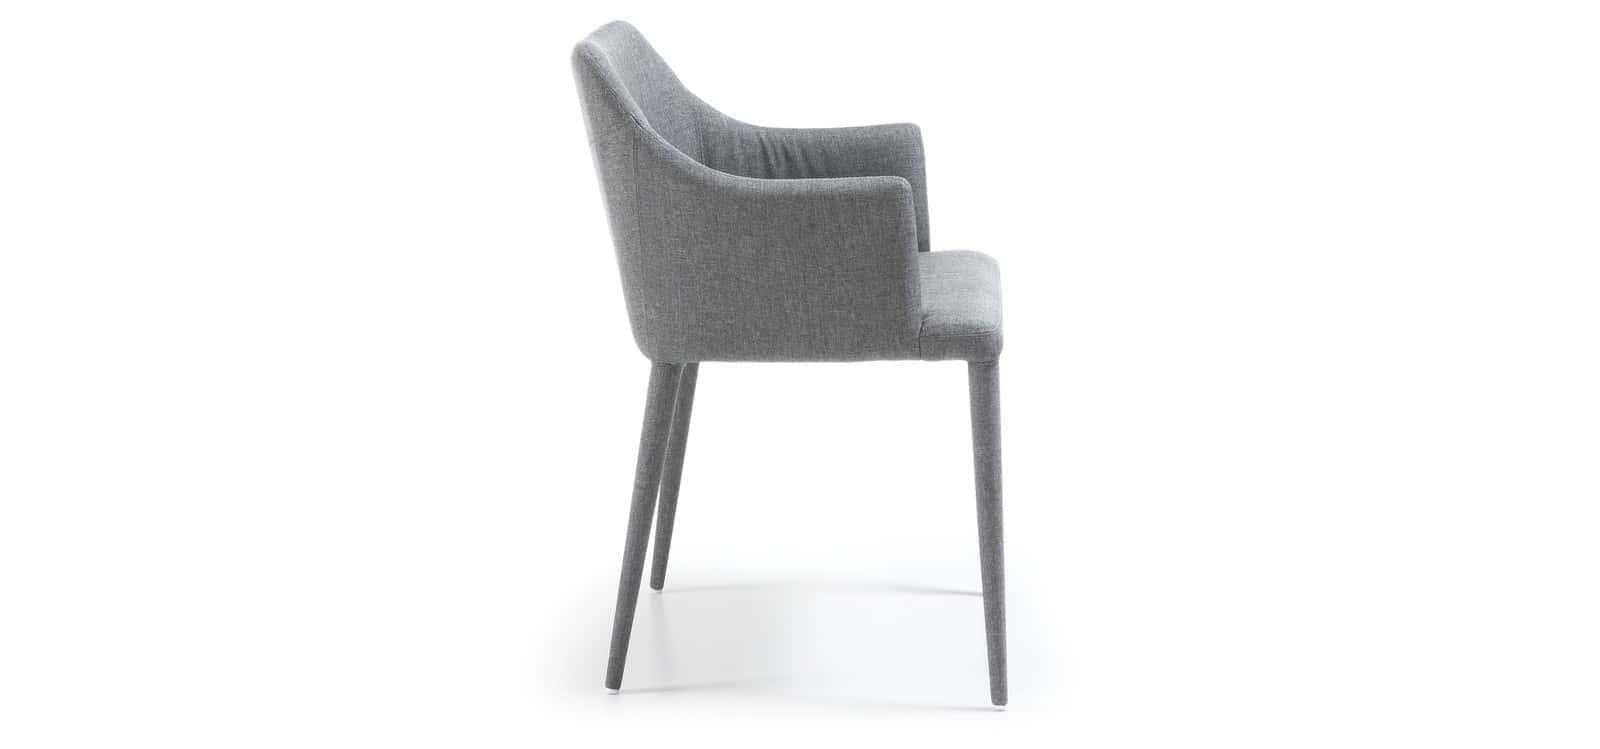 SET OF 2 Liana Chair - Light Grey